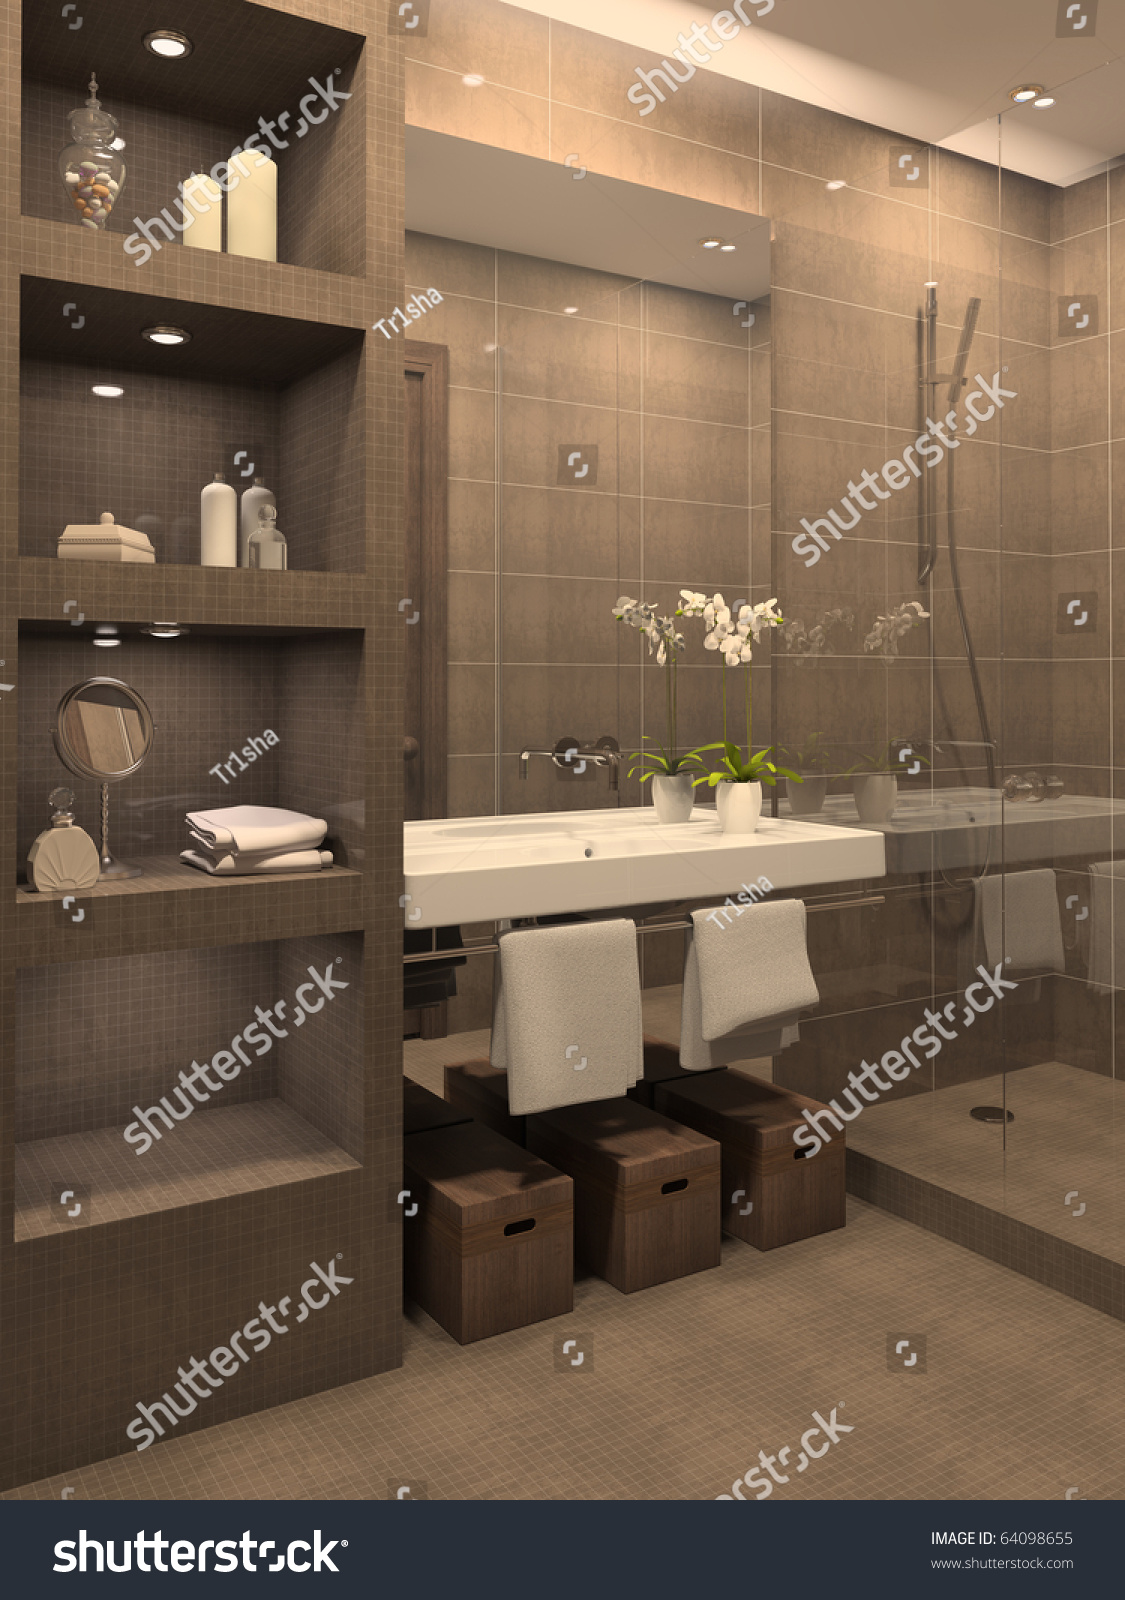 Modern bathroom interior 3d render stock photo 64098655 for Modern interior bathroom